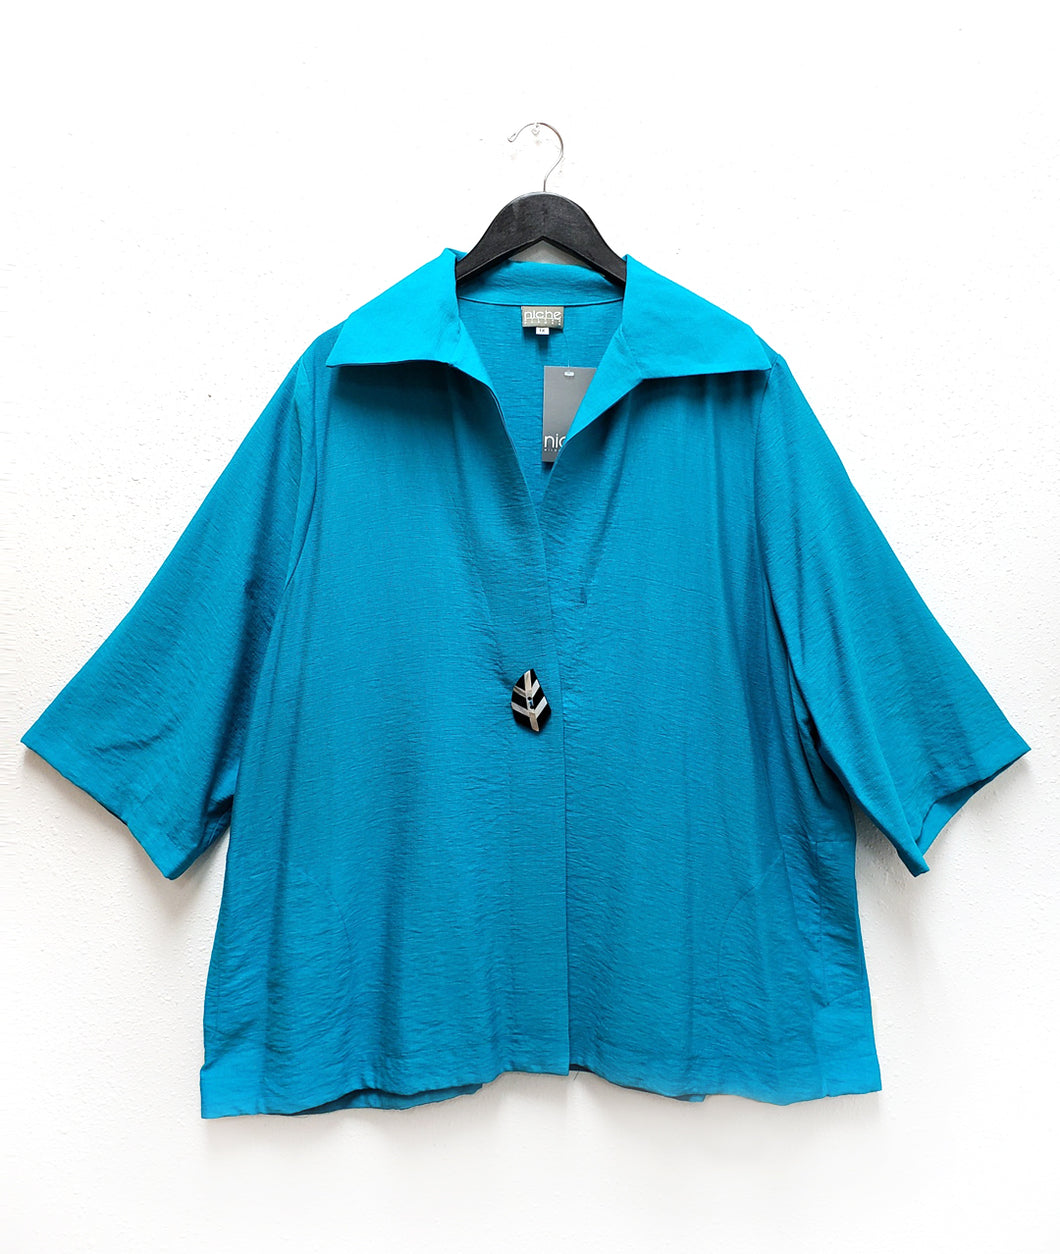 turquoise blue jacket with a single black and white leaf button and a large collar